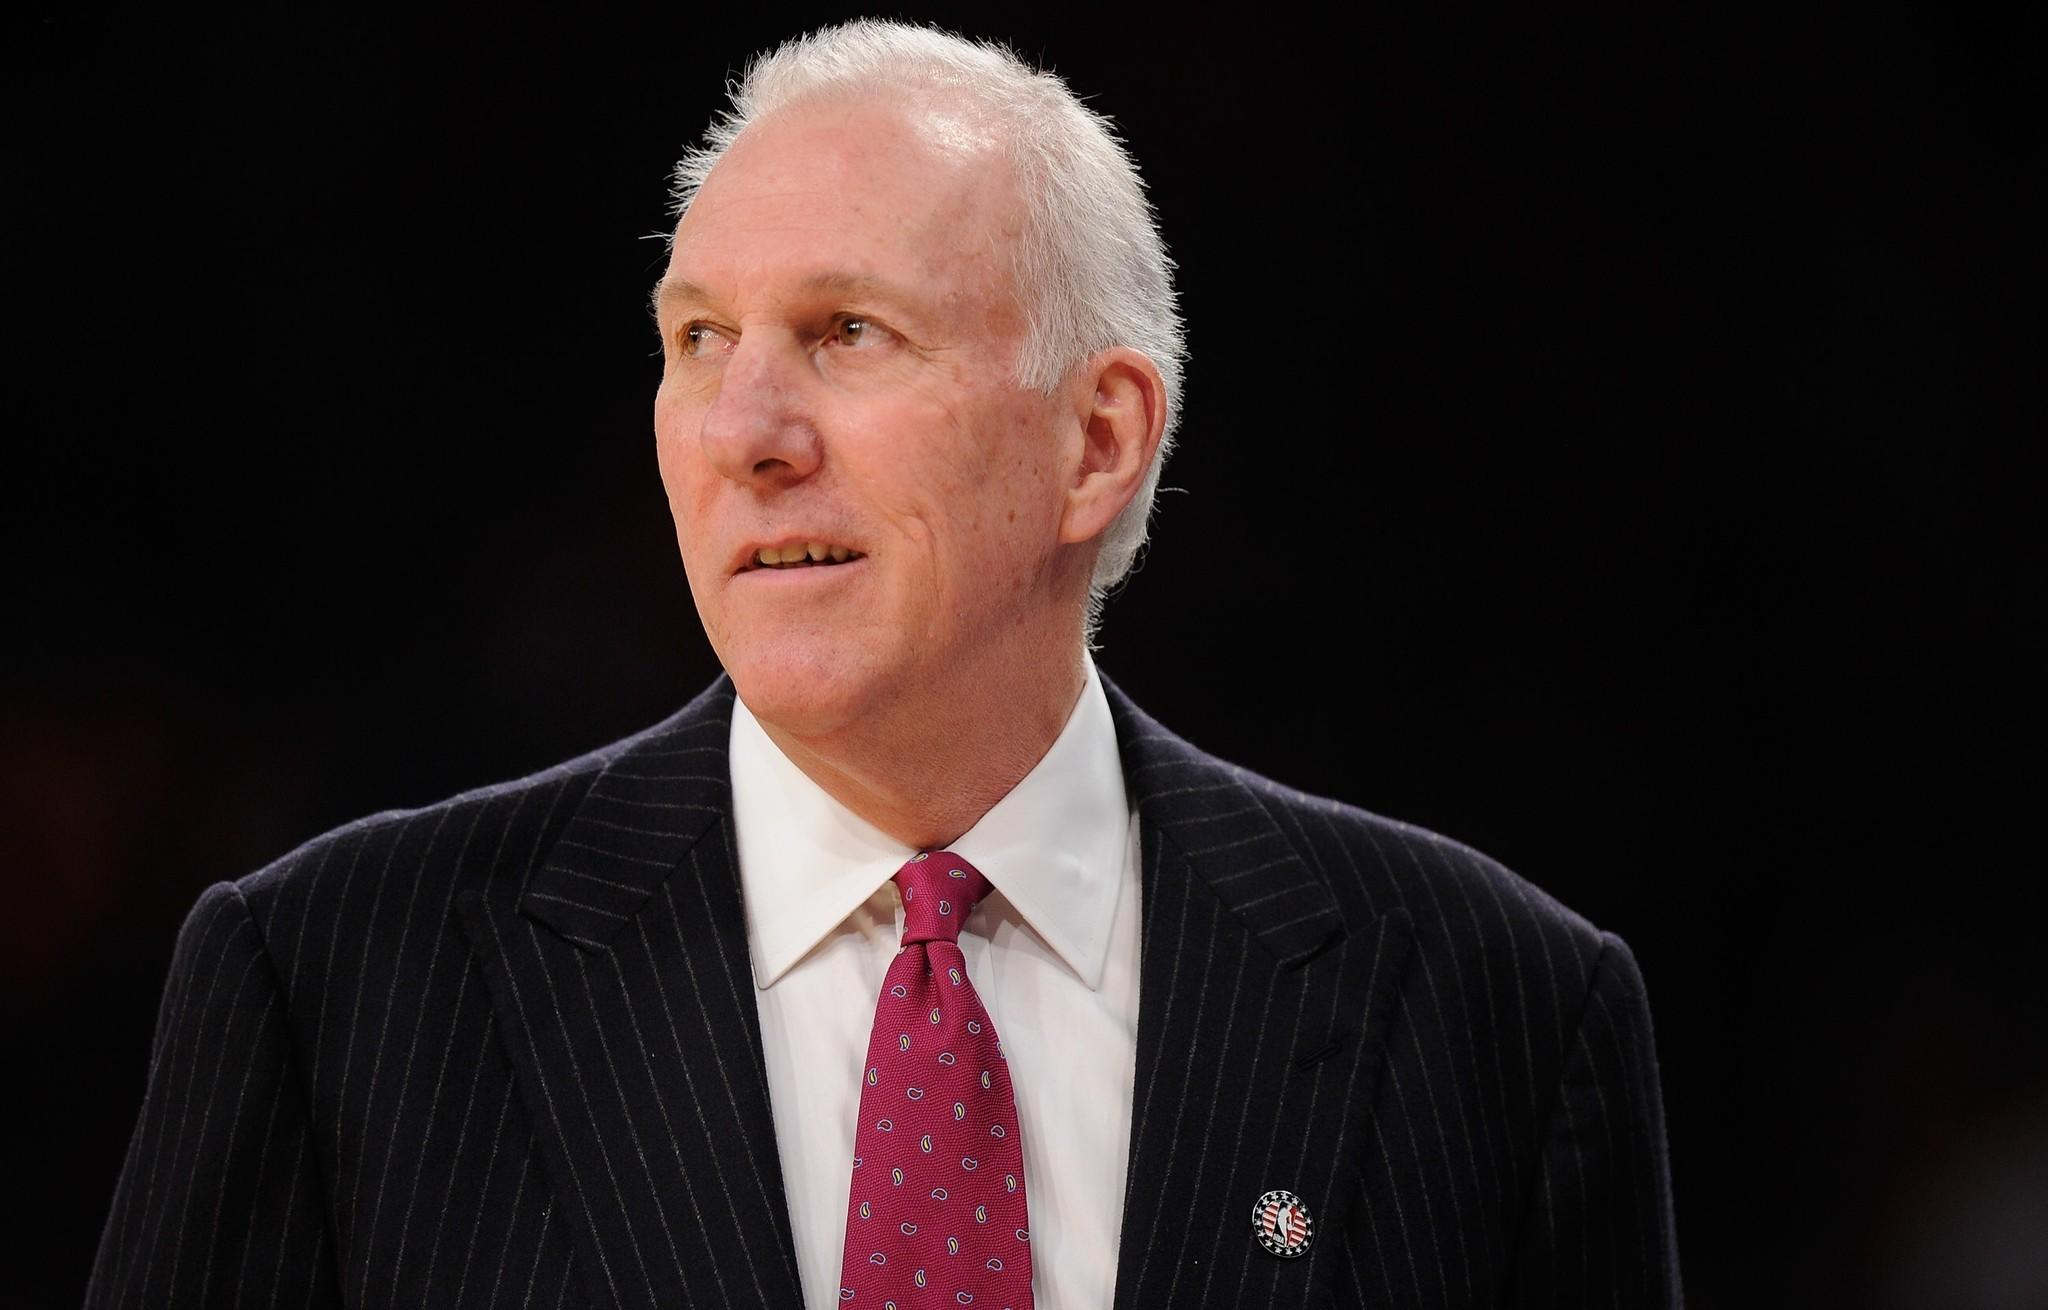 San Antonio's Gregg Popovich has been named NBA coach of the year for the third time.